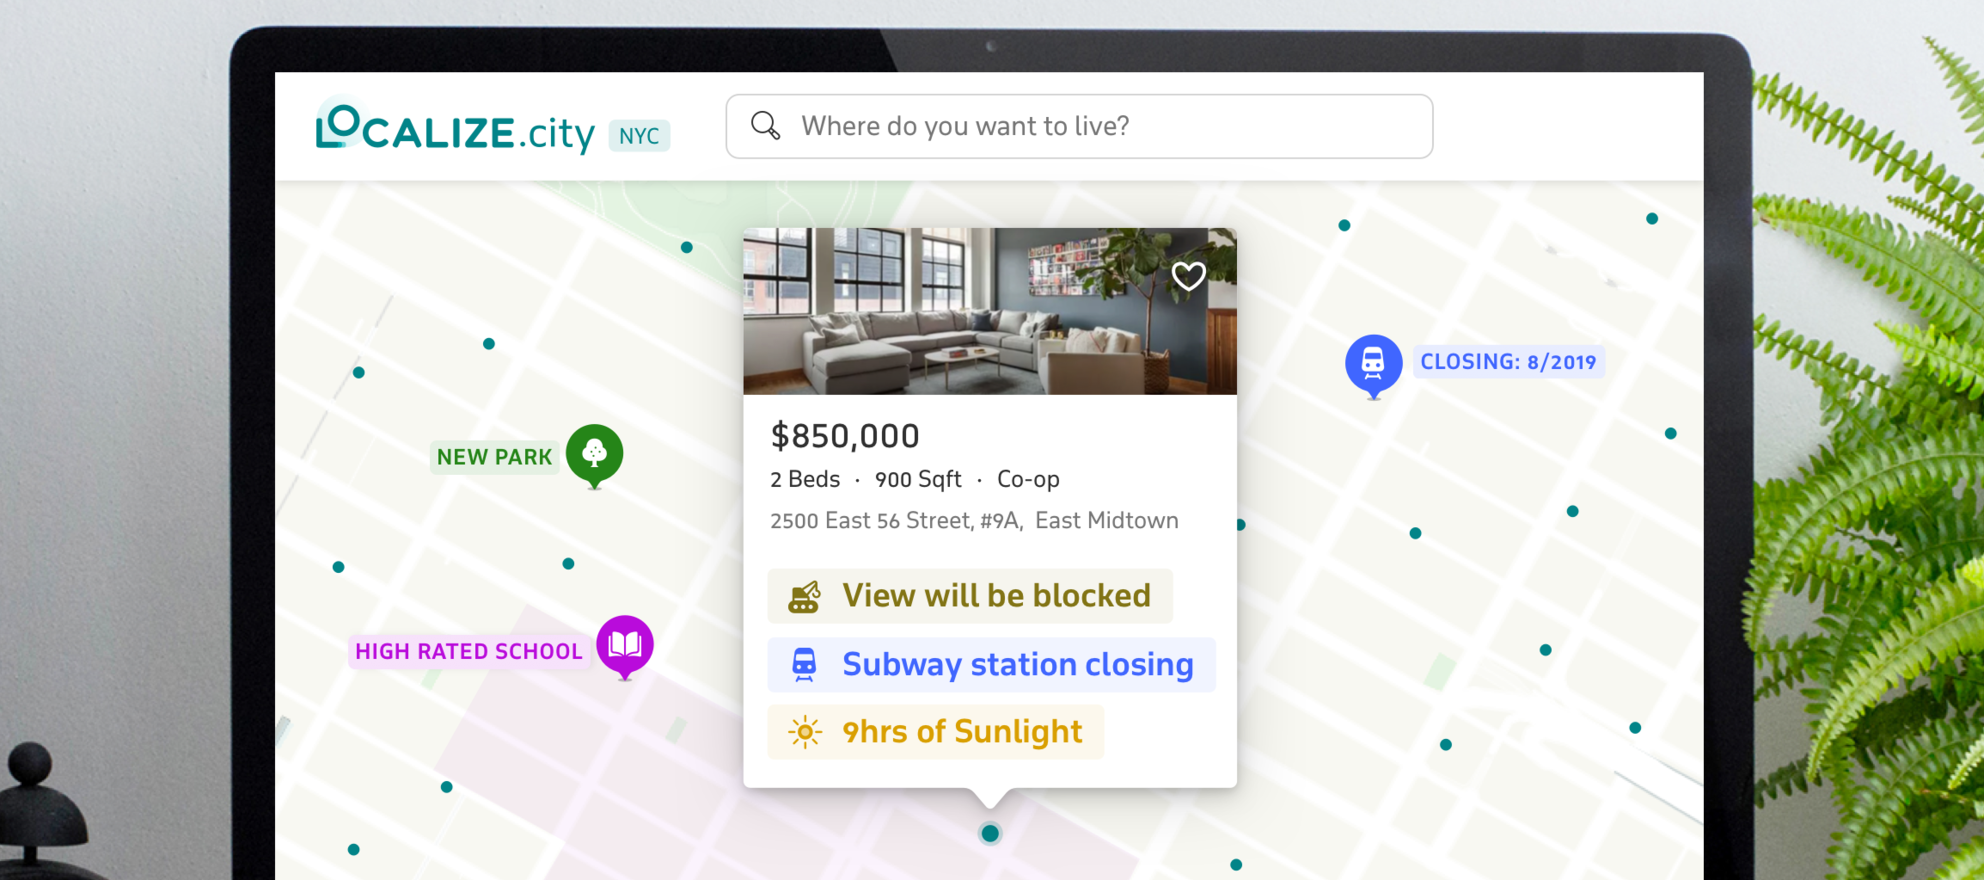 Localize.city debuts new search platform, expands to Chicago